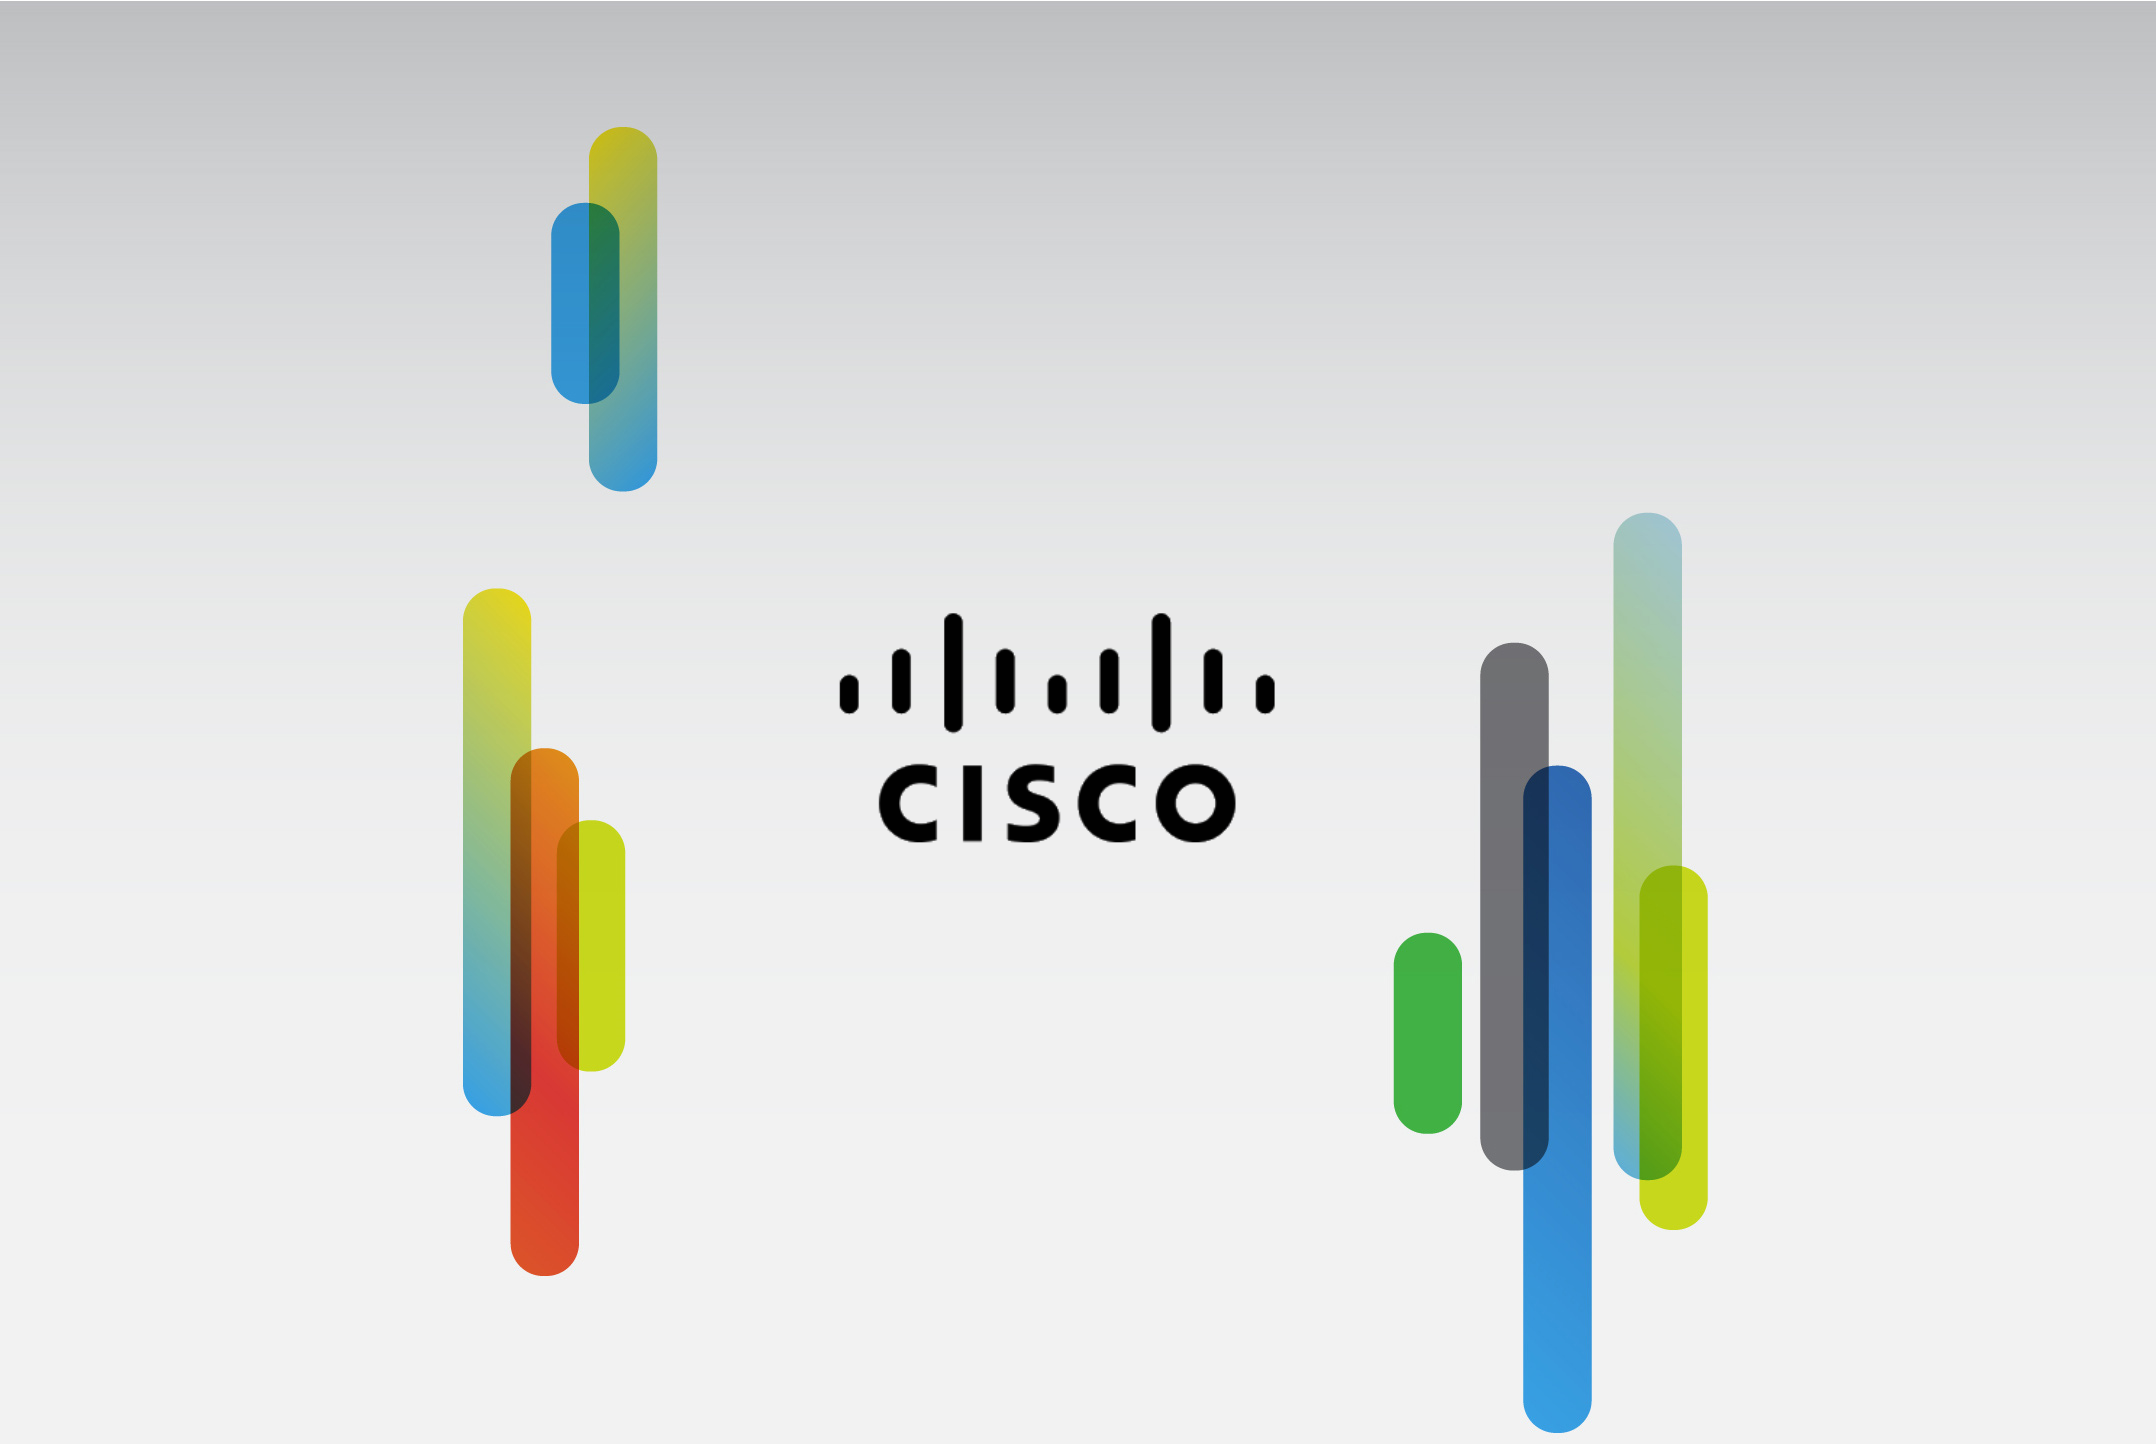 cisco systems background Cisco's popular vpn client for 64bit windows operating systems vpn client version: 50070440-k9 useful cisco vpn related articles w.